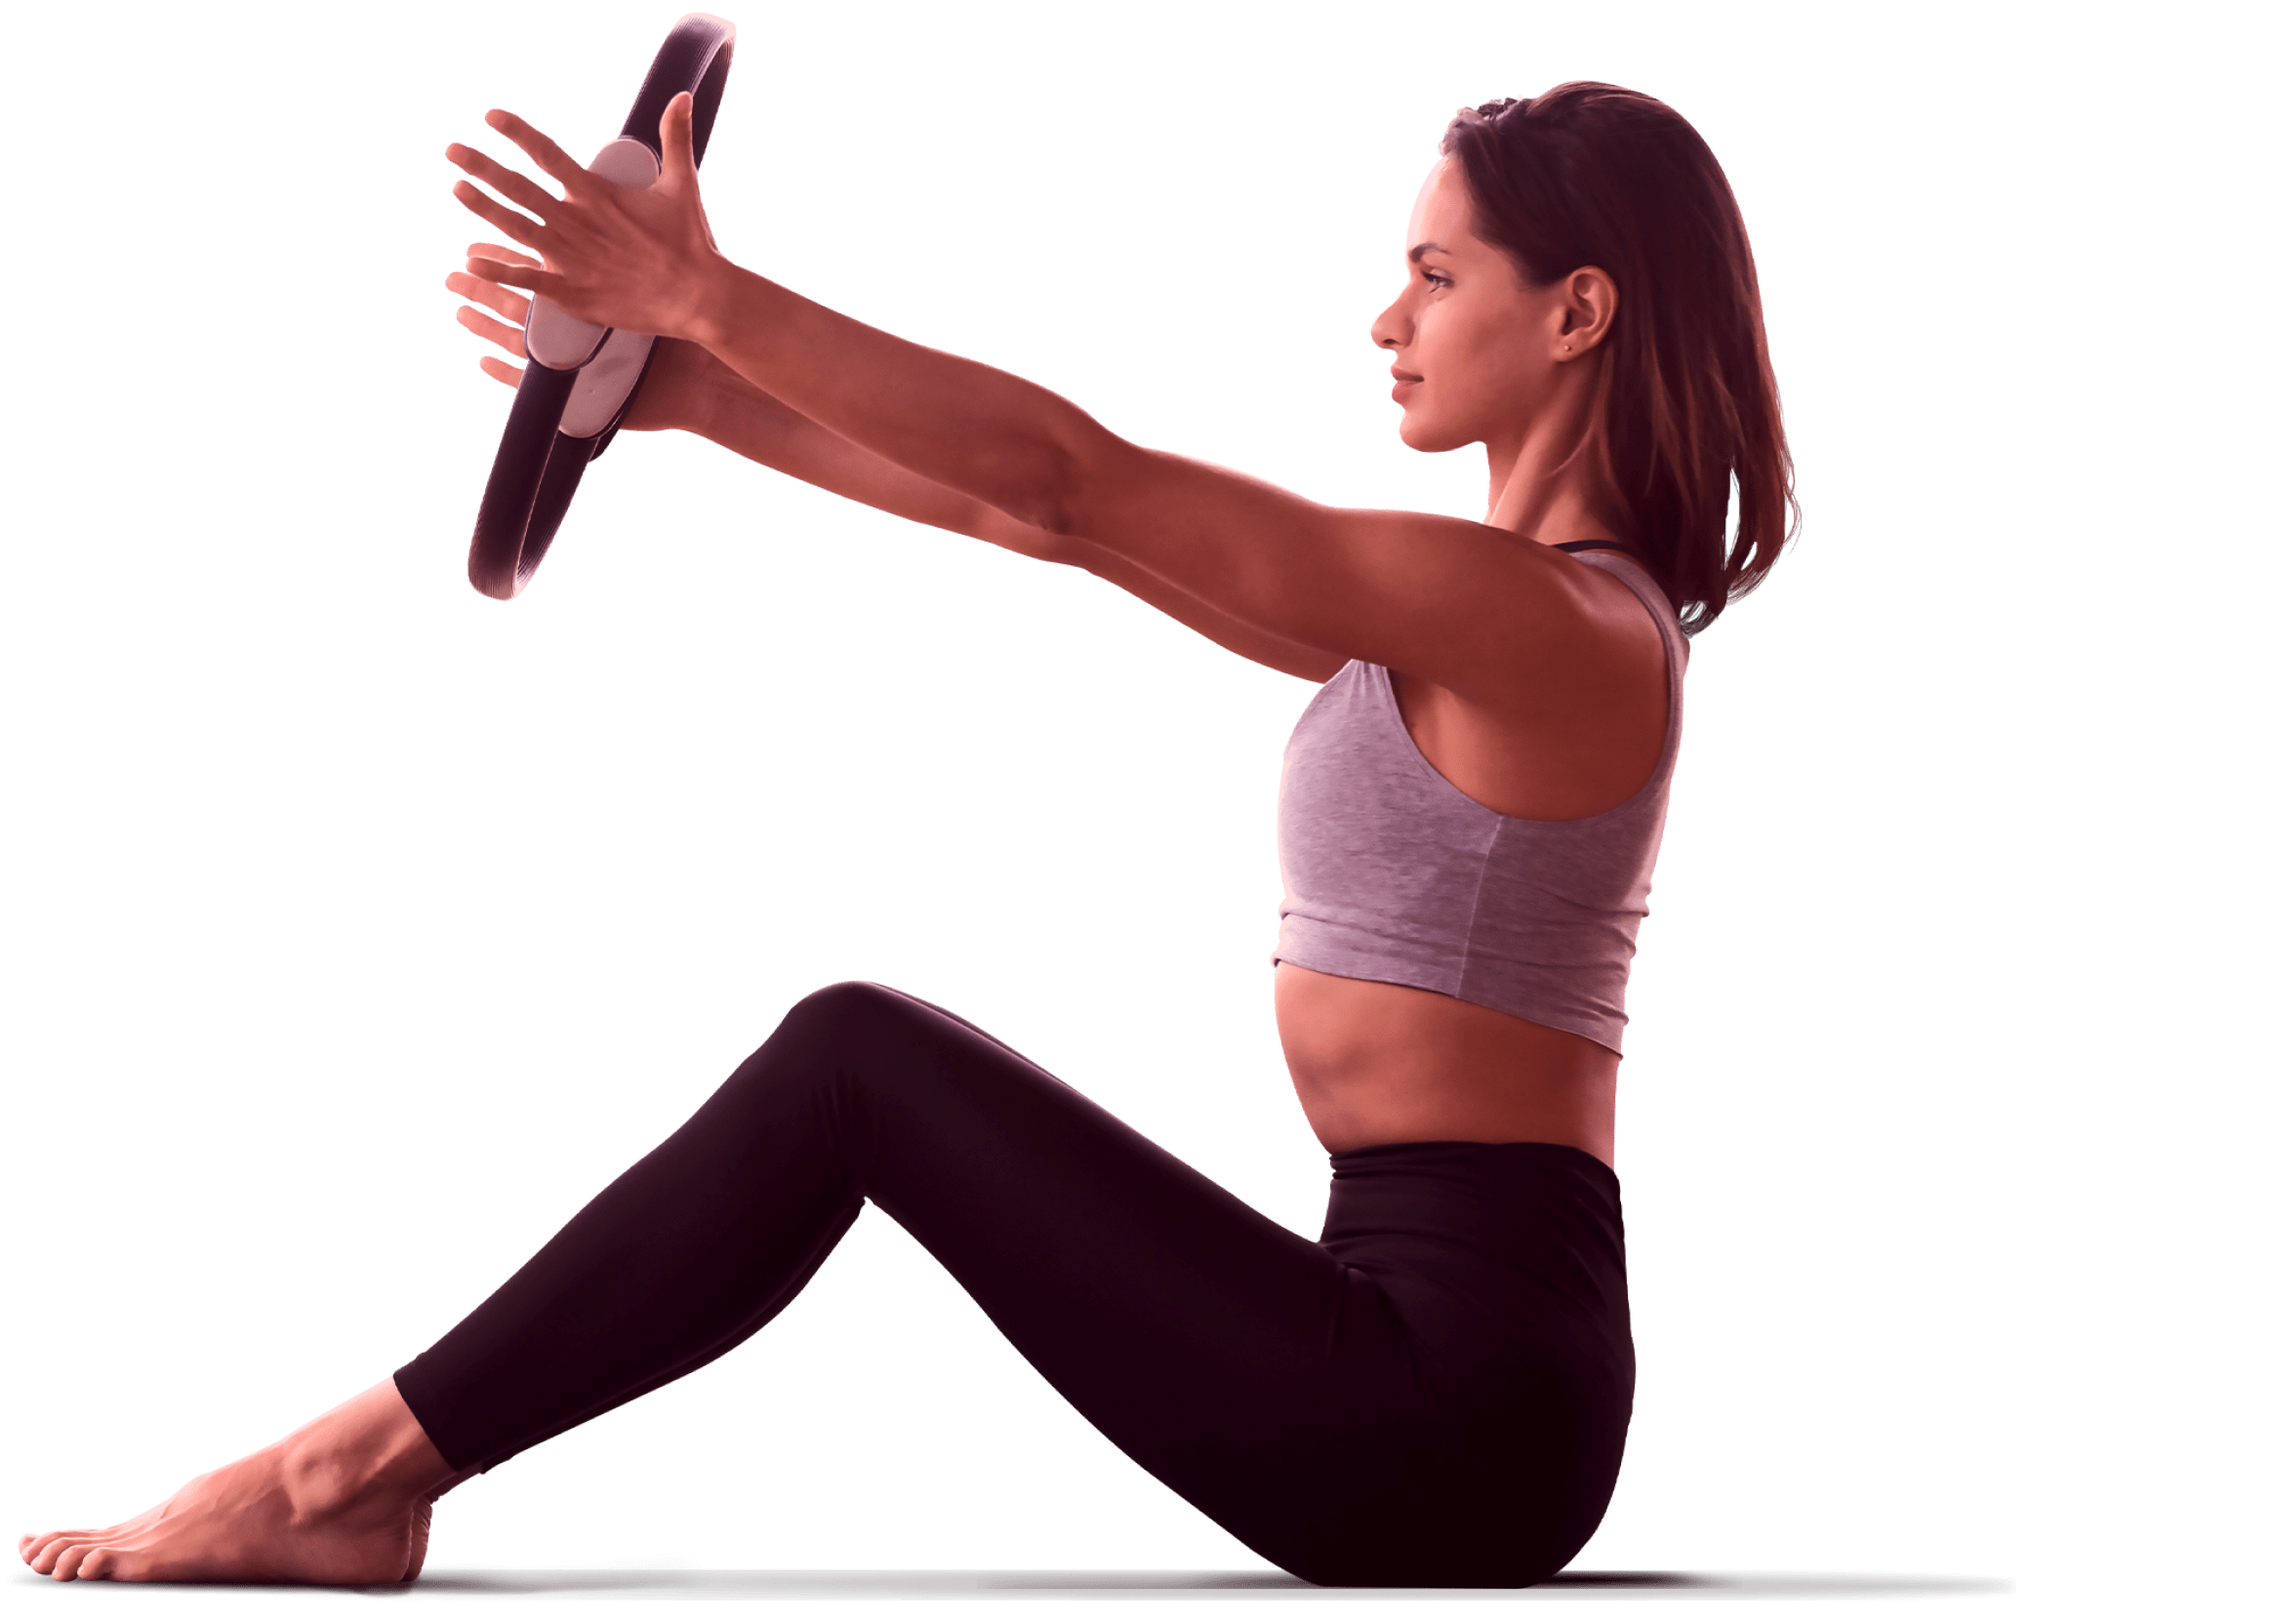 Woman performing a pilates exercise